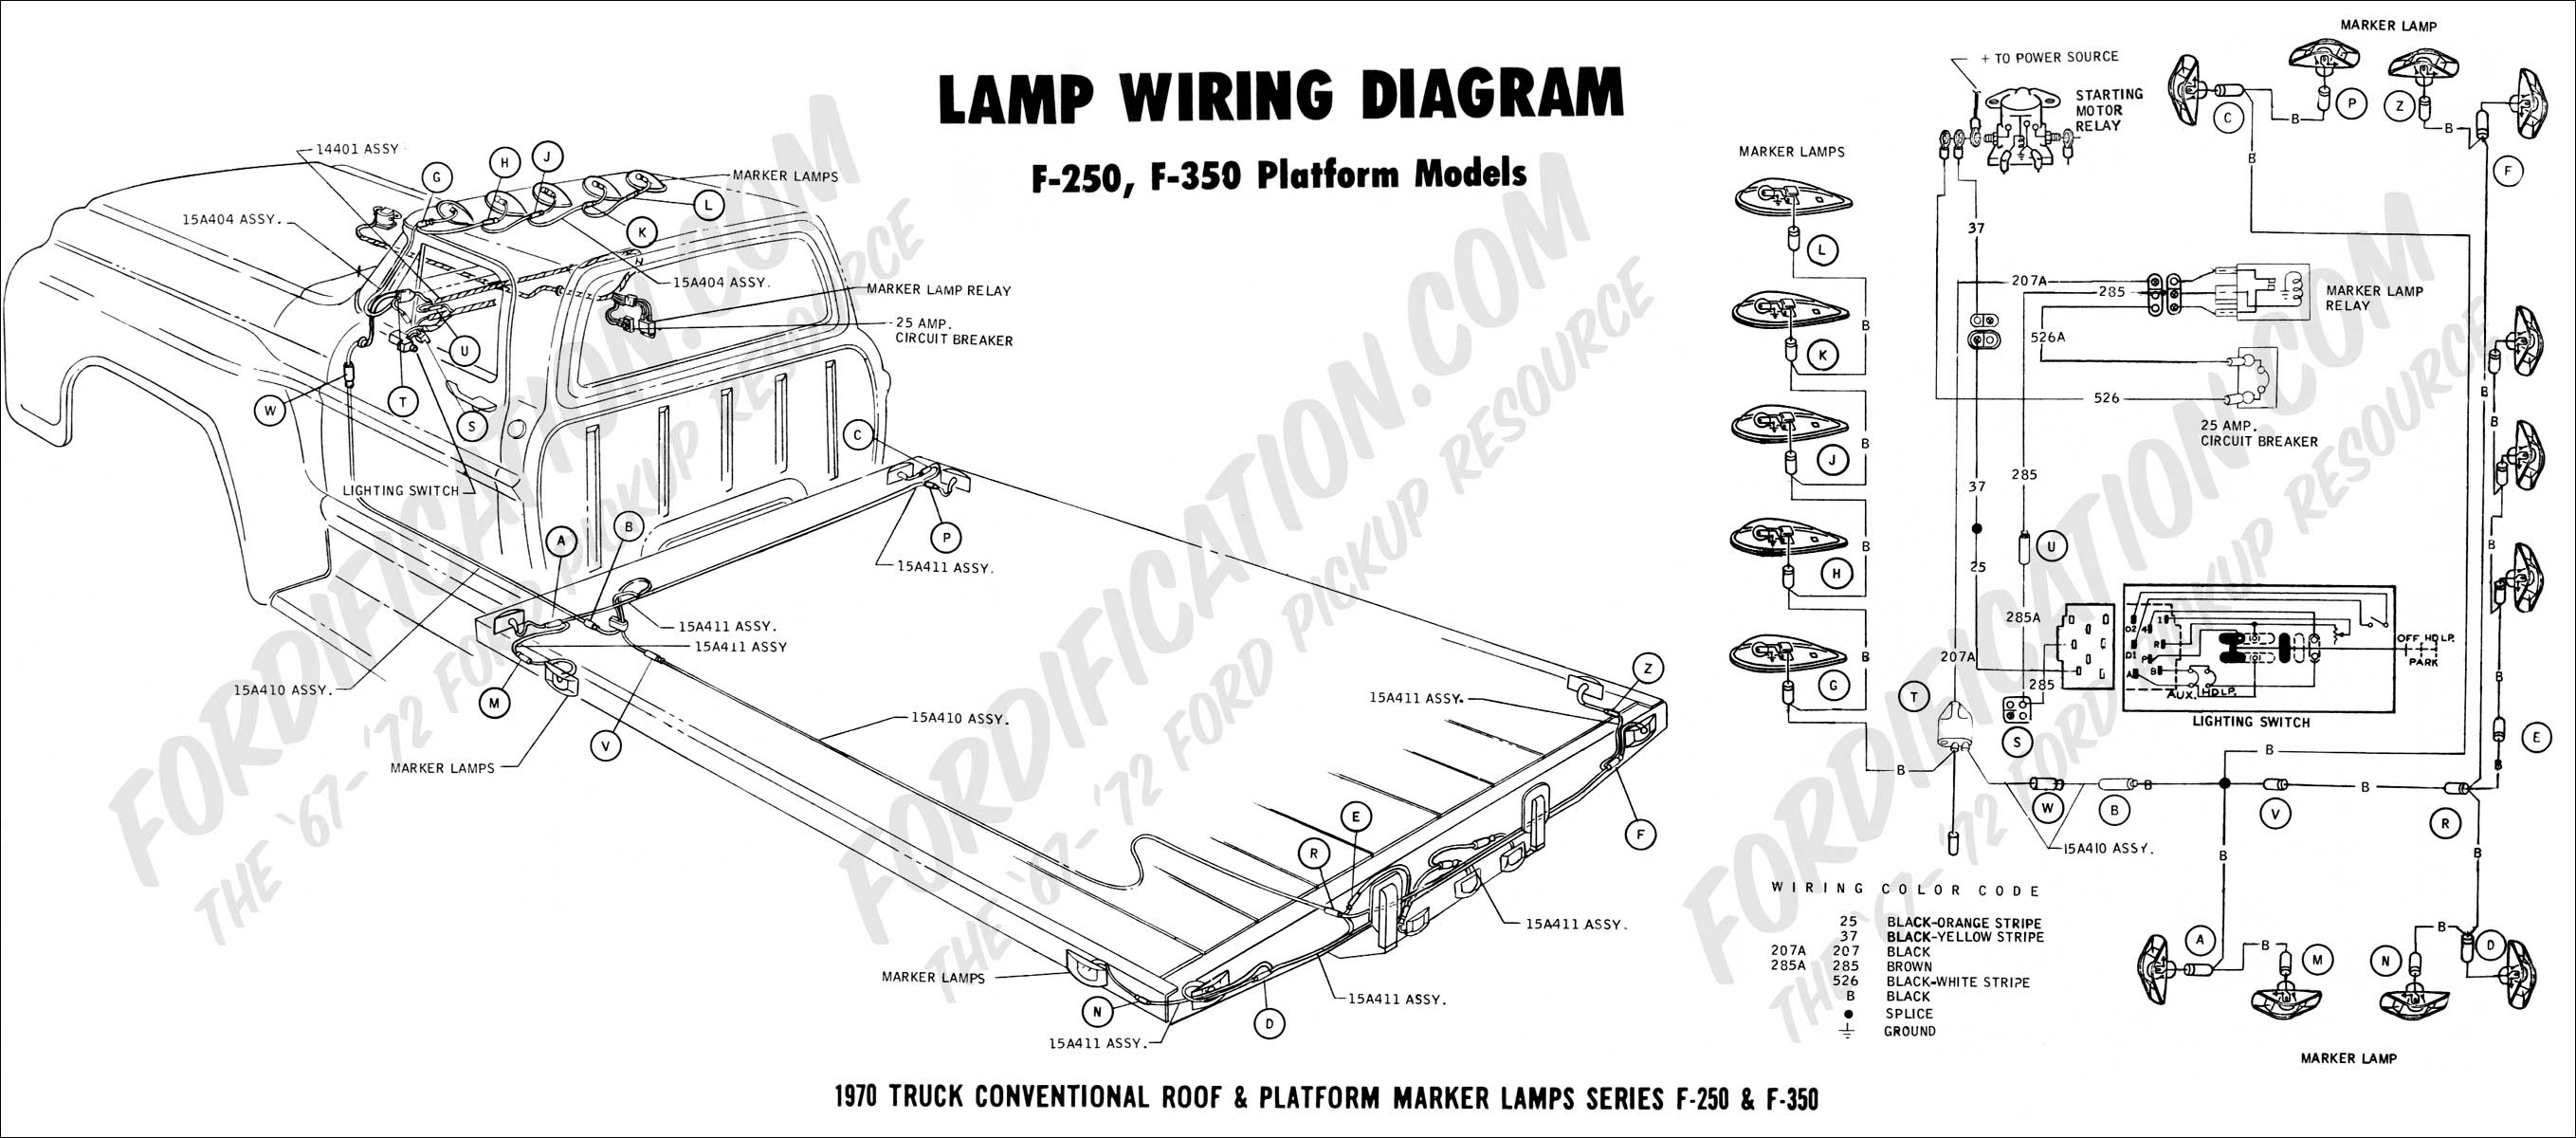 69 Camaro Tail Light Wiring Diagram